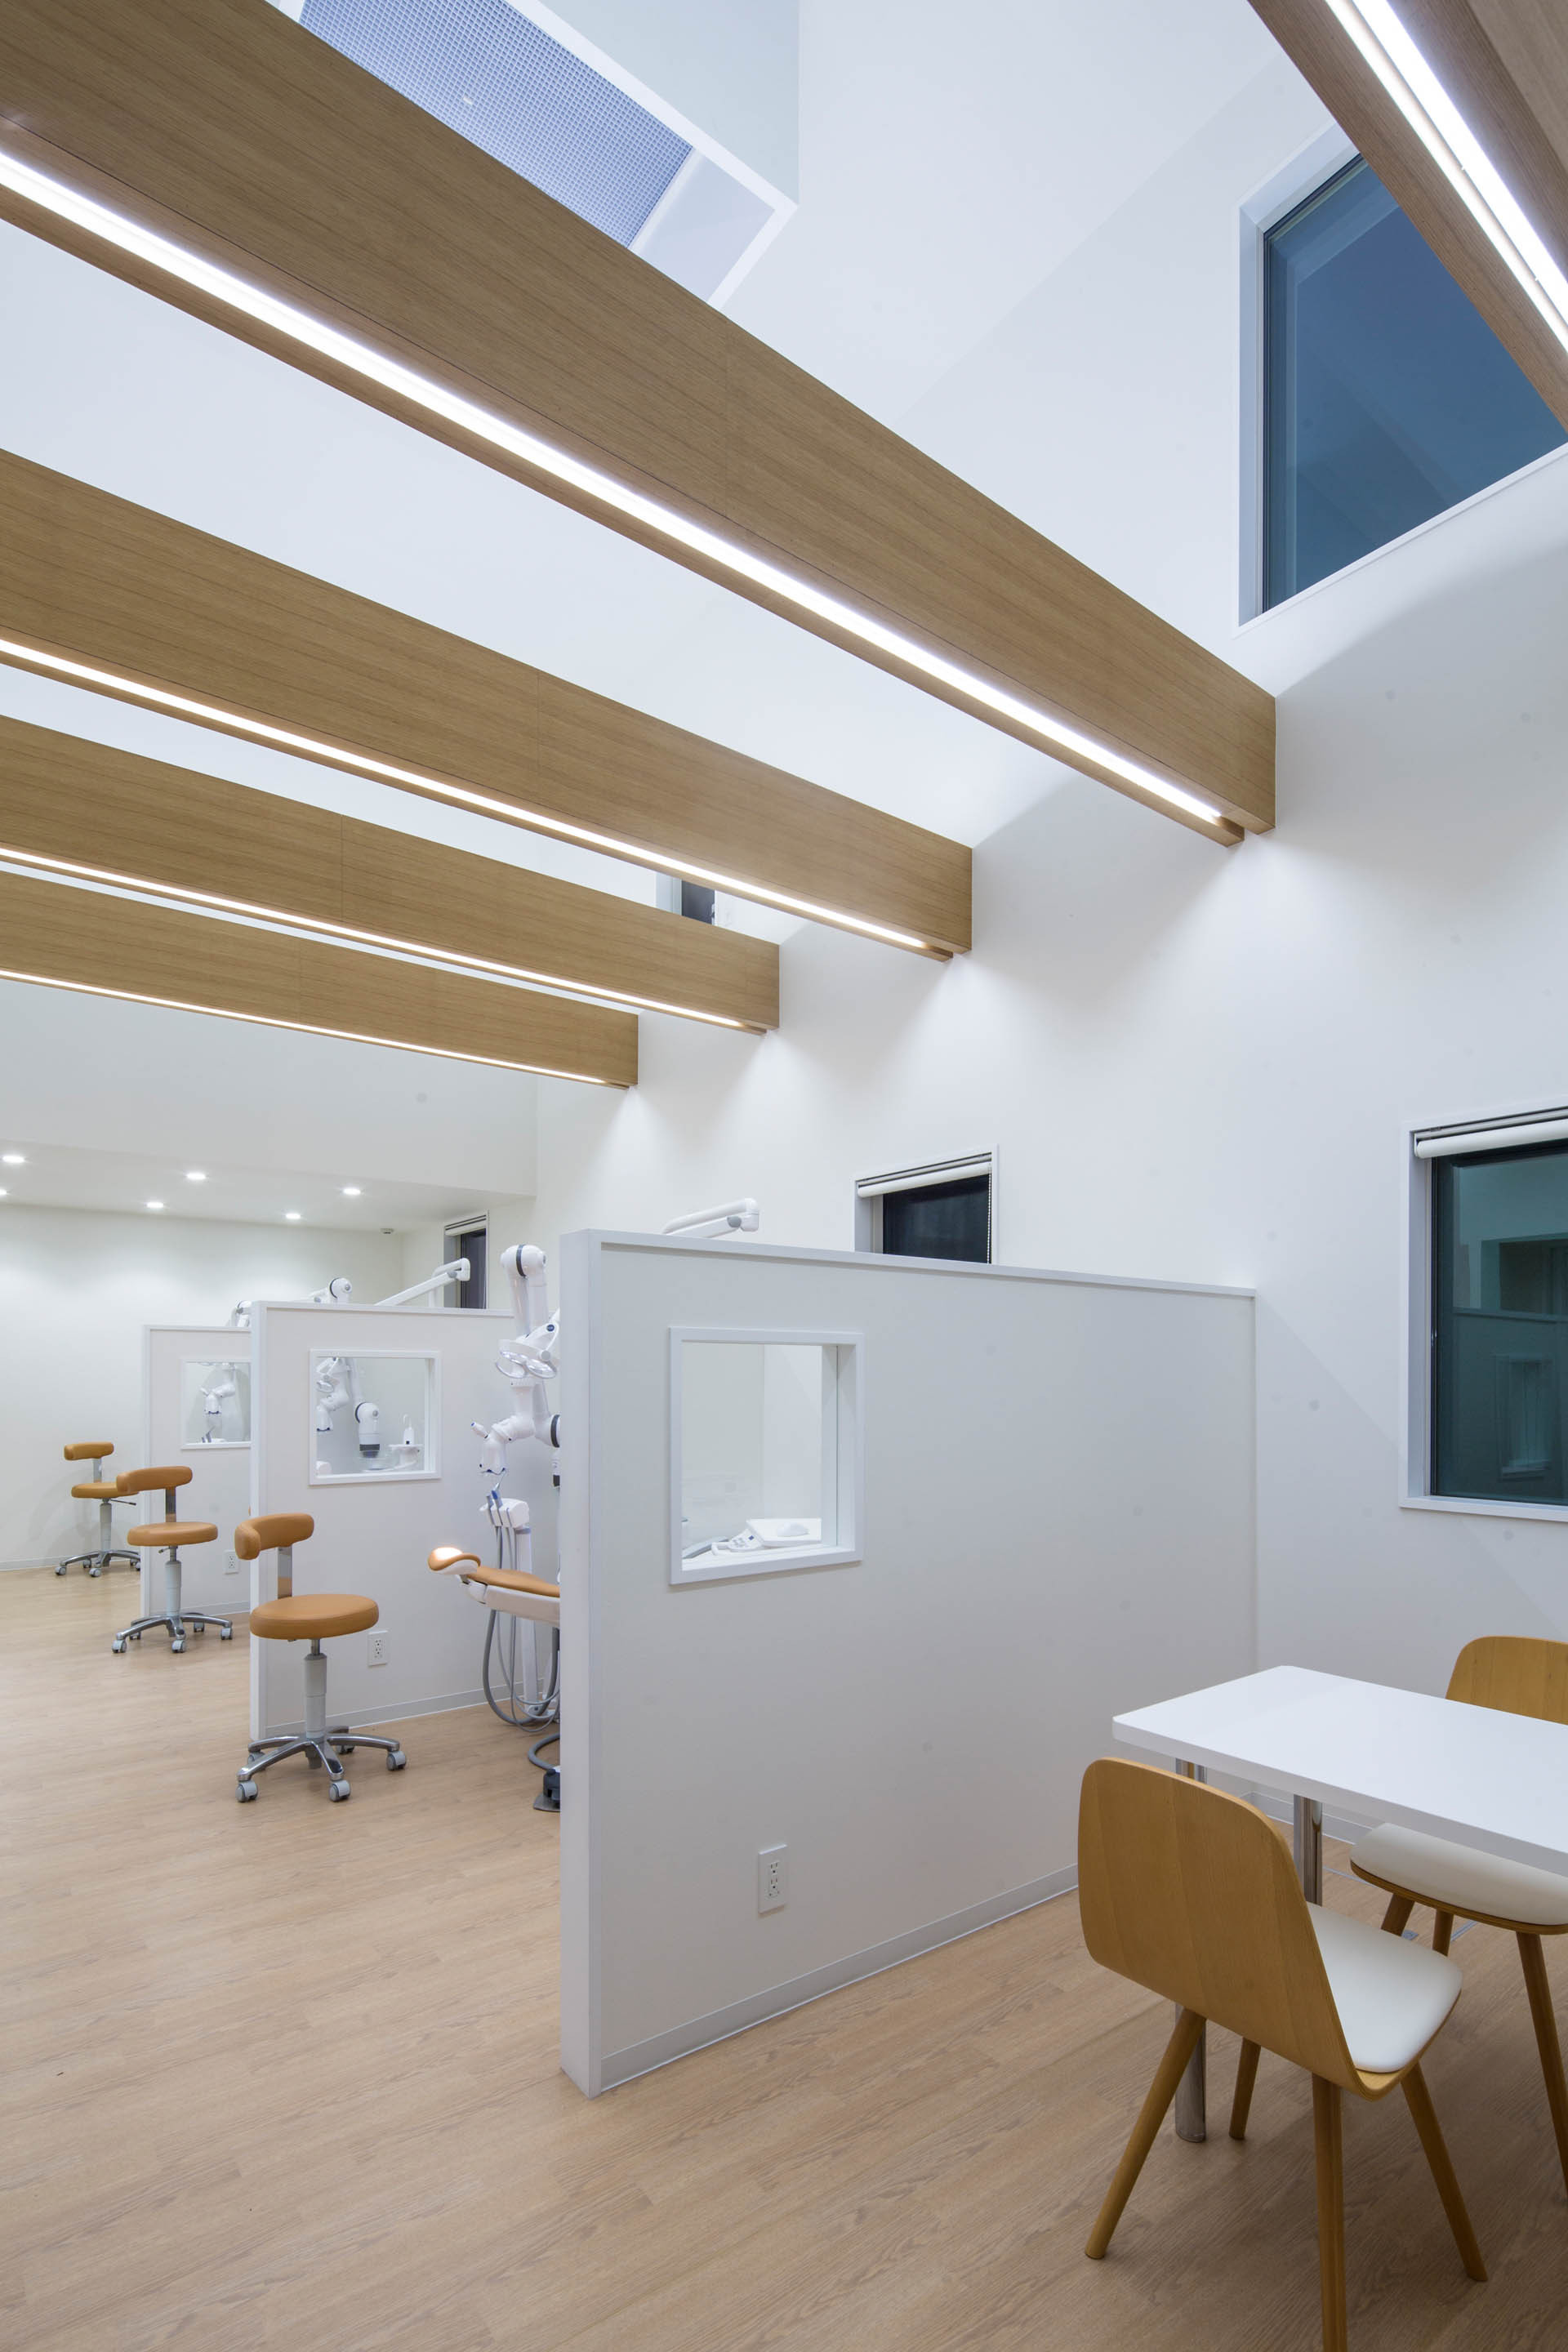 gallery of yokoi dental clinic iks design msd office 10